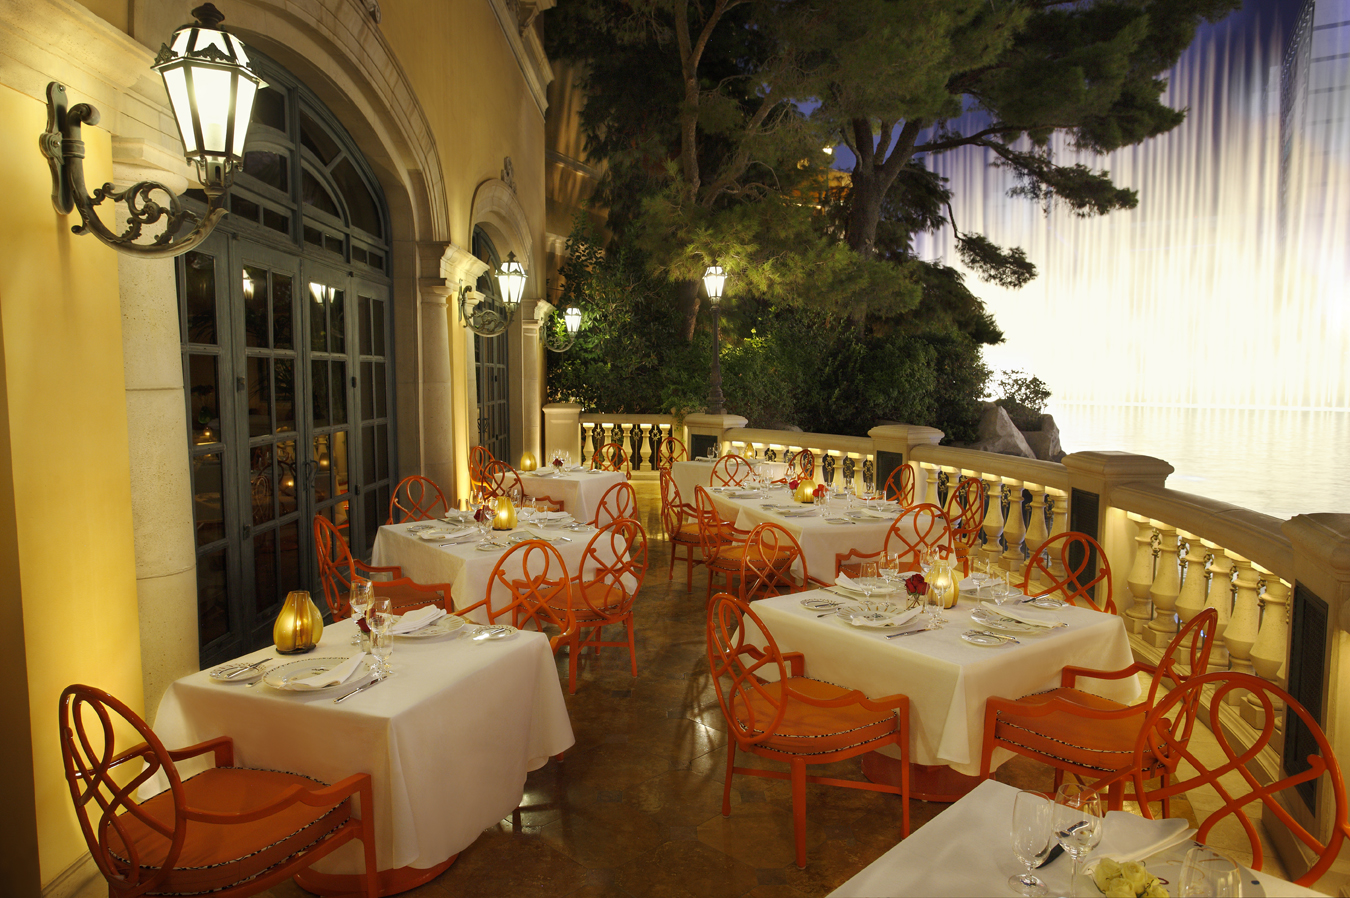 The patio at Picasso restaurant, winner of 2 Michelin stars and an incredible view